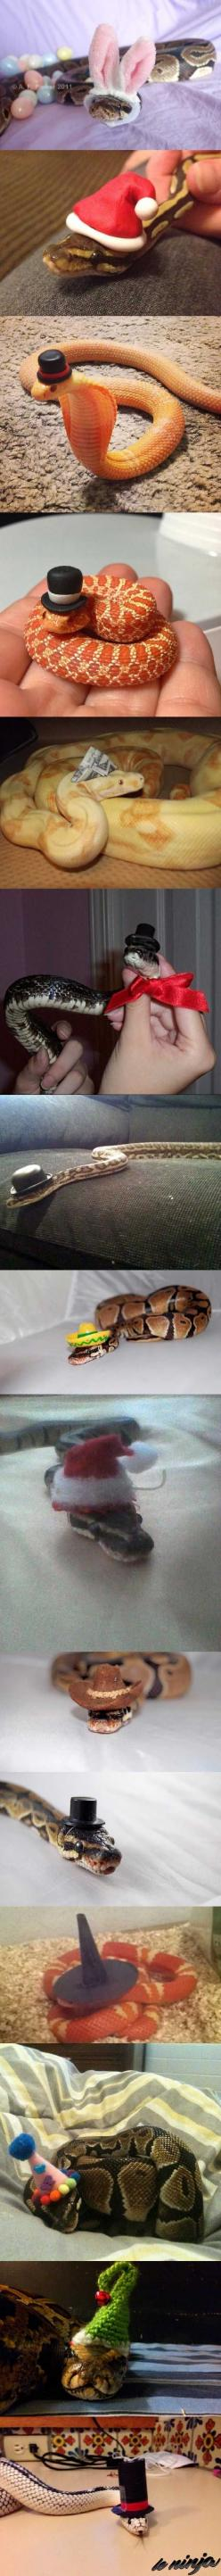 Idk why, but snake are so much less intimidating with hats on.: Reptiles Snakes, Pet Snake, Adorable Snakes, Snakes In Hats, Animals Snakes, Google Snakes, Costumed Snakes I, Fancy Snakes